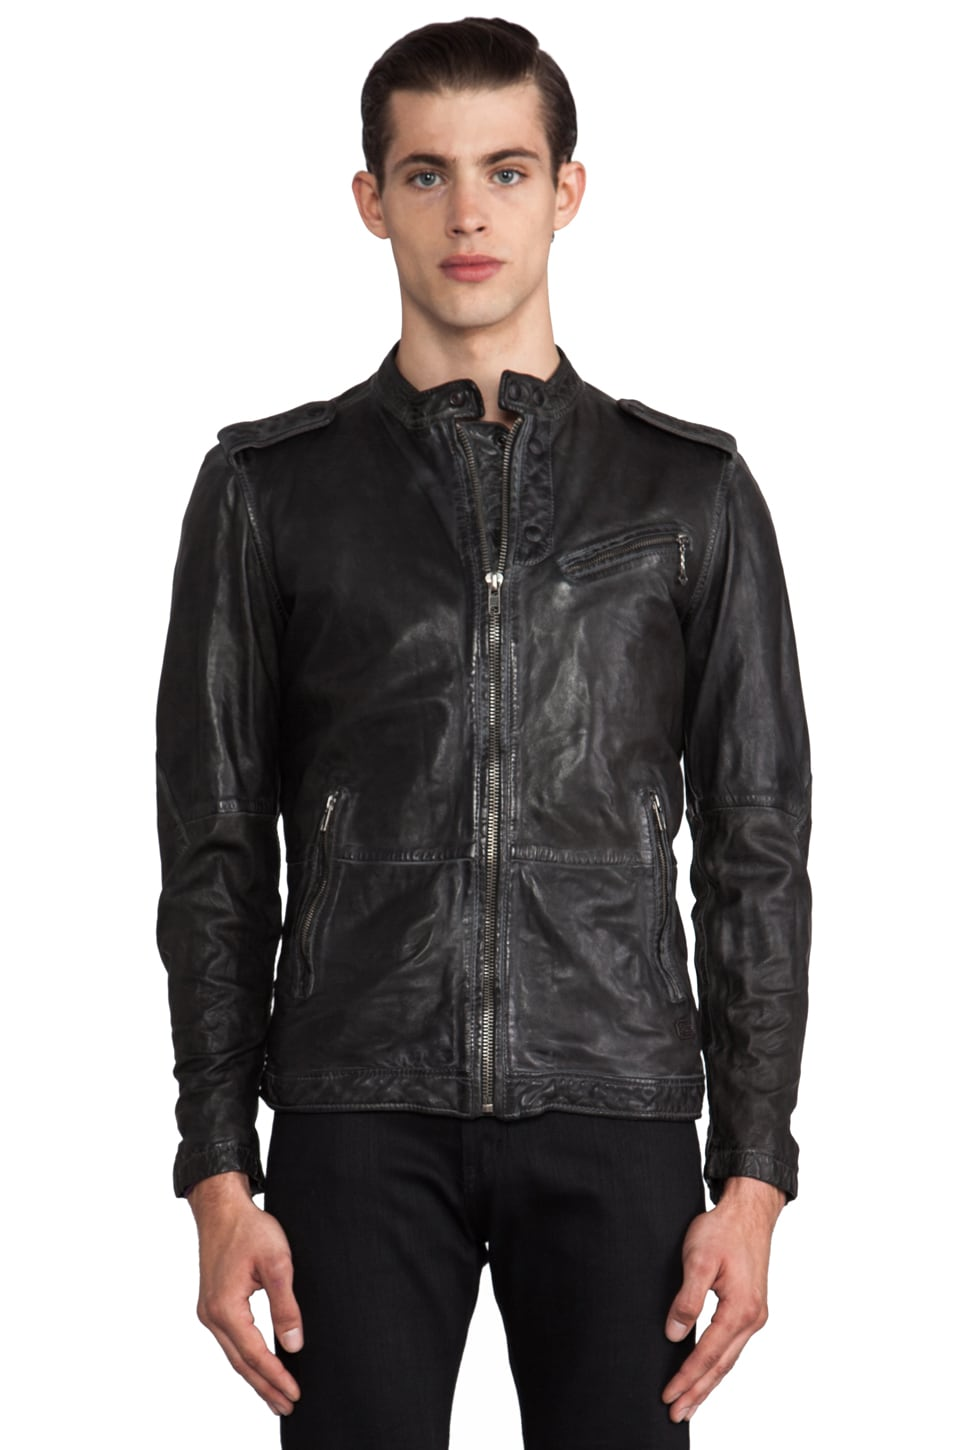 Diesel Leprandis Leather Jacket in Charcoal